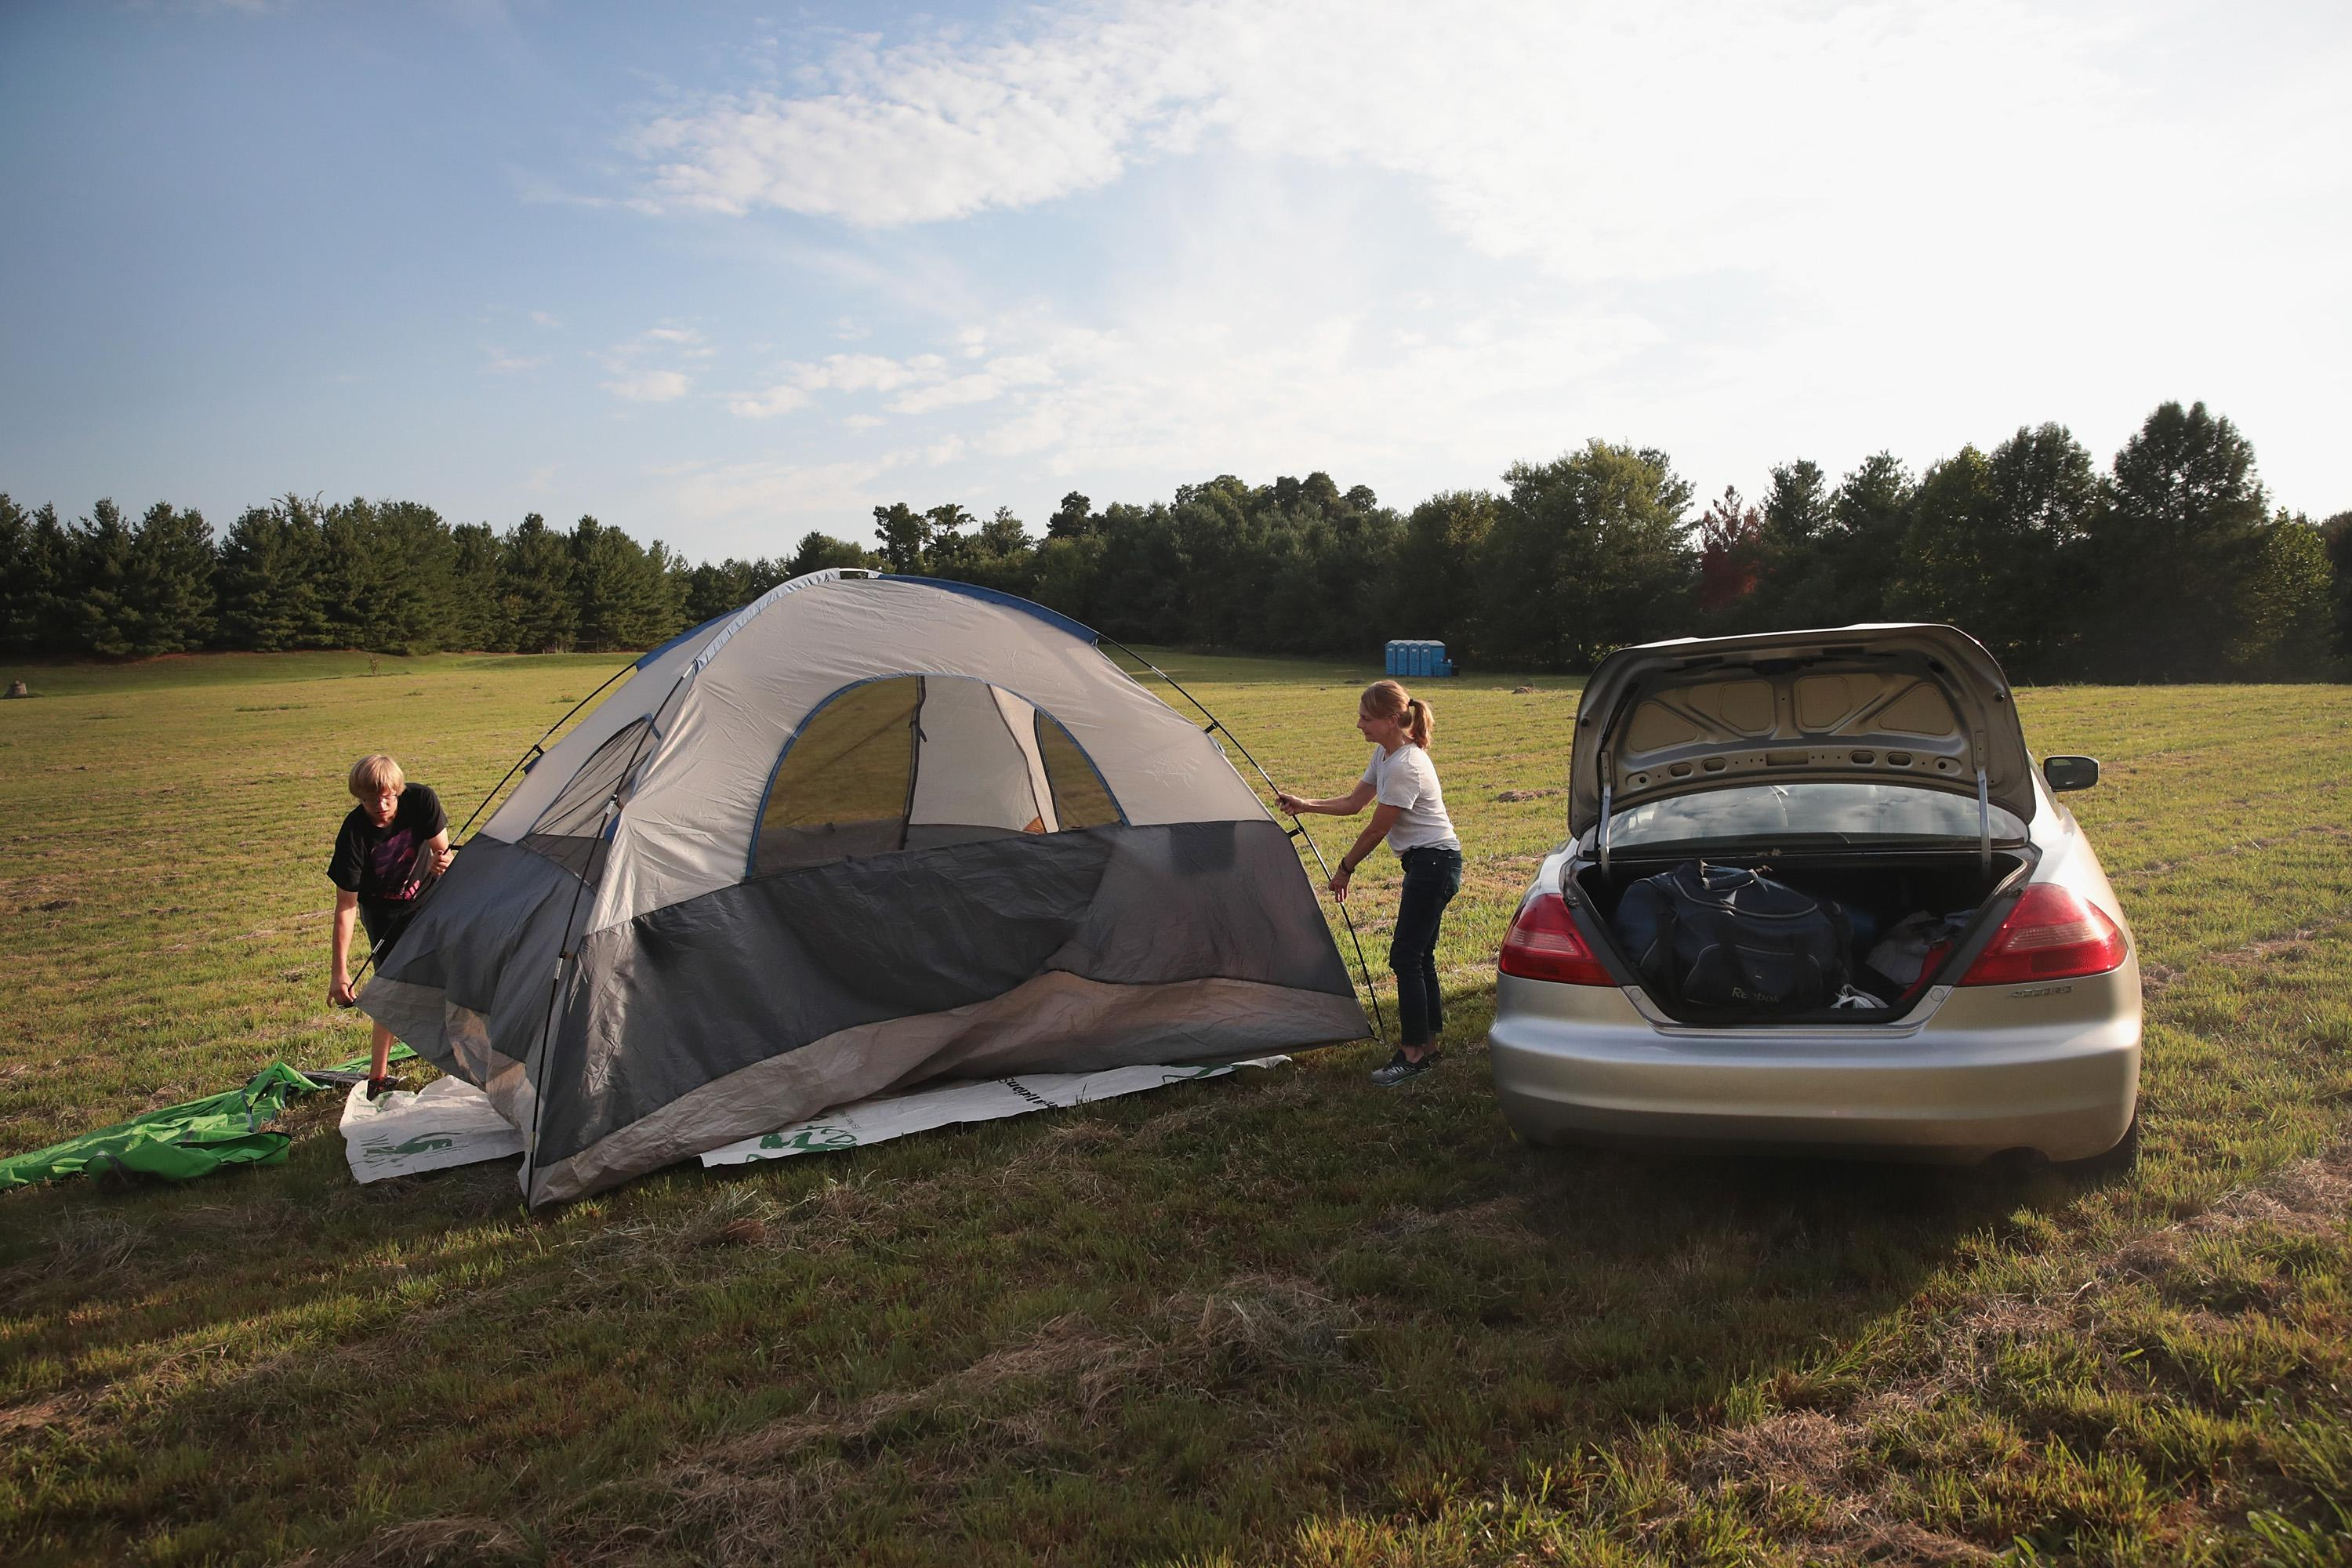 Karen Just and her son Mathew pitch a tent in a hay field which had been converted into a campground to host visitors for Monday's solar elclipse on August 18, 2017 near Carbondale, Illinois.